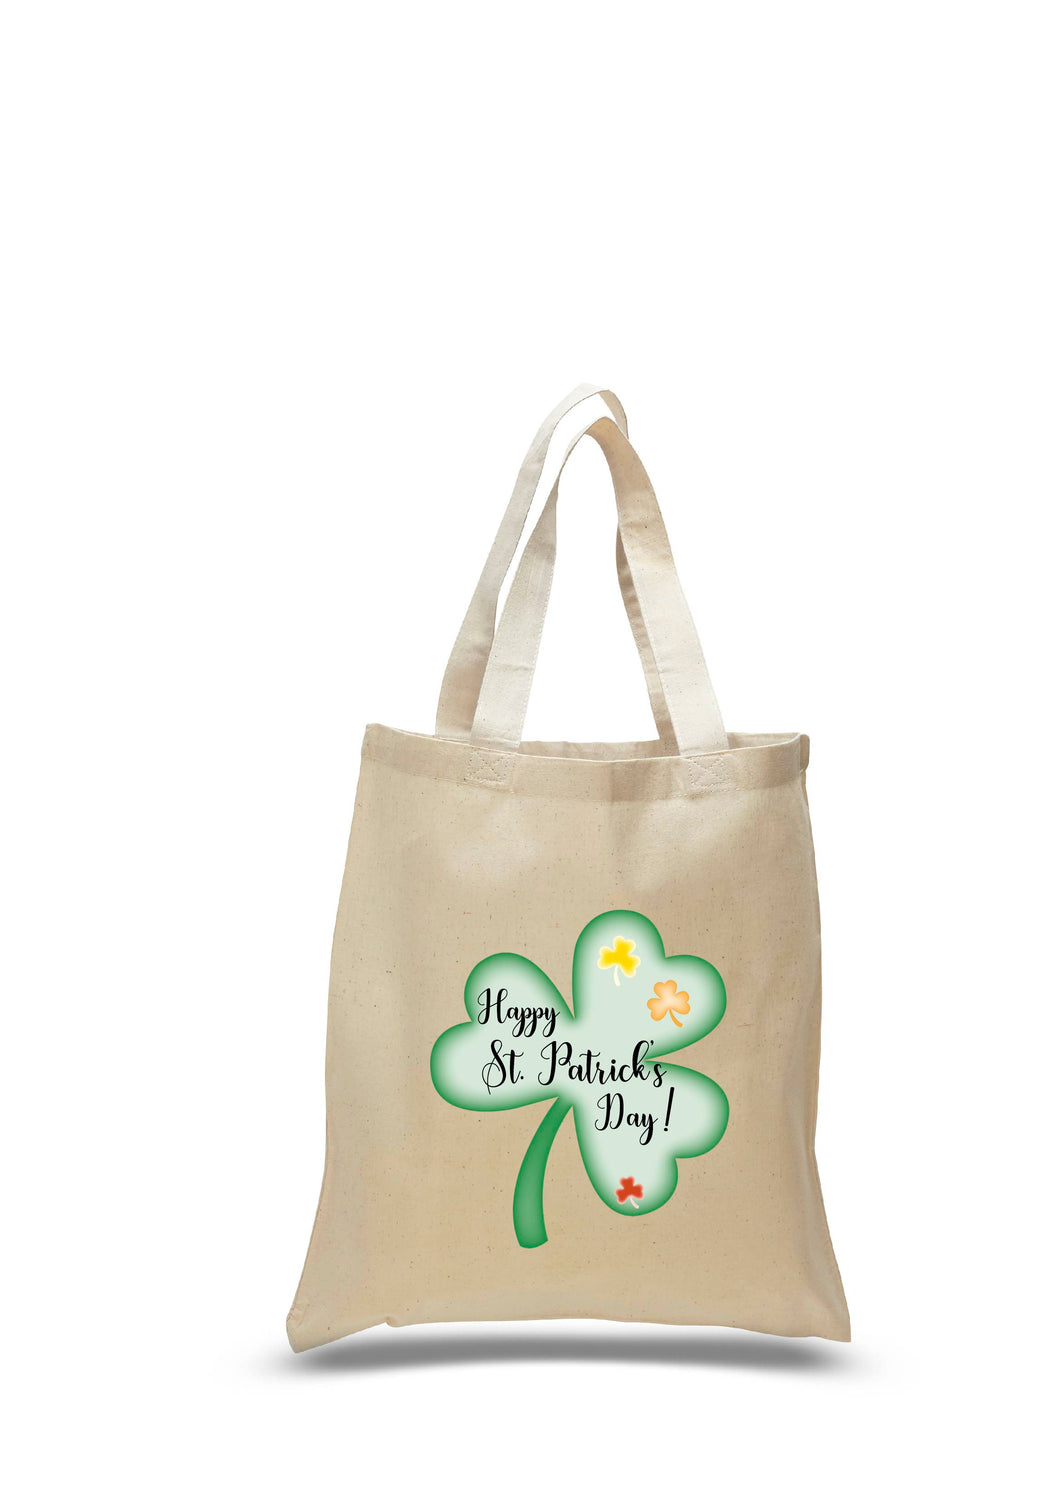 Happy St. Patrick's Day Tote